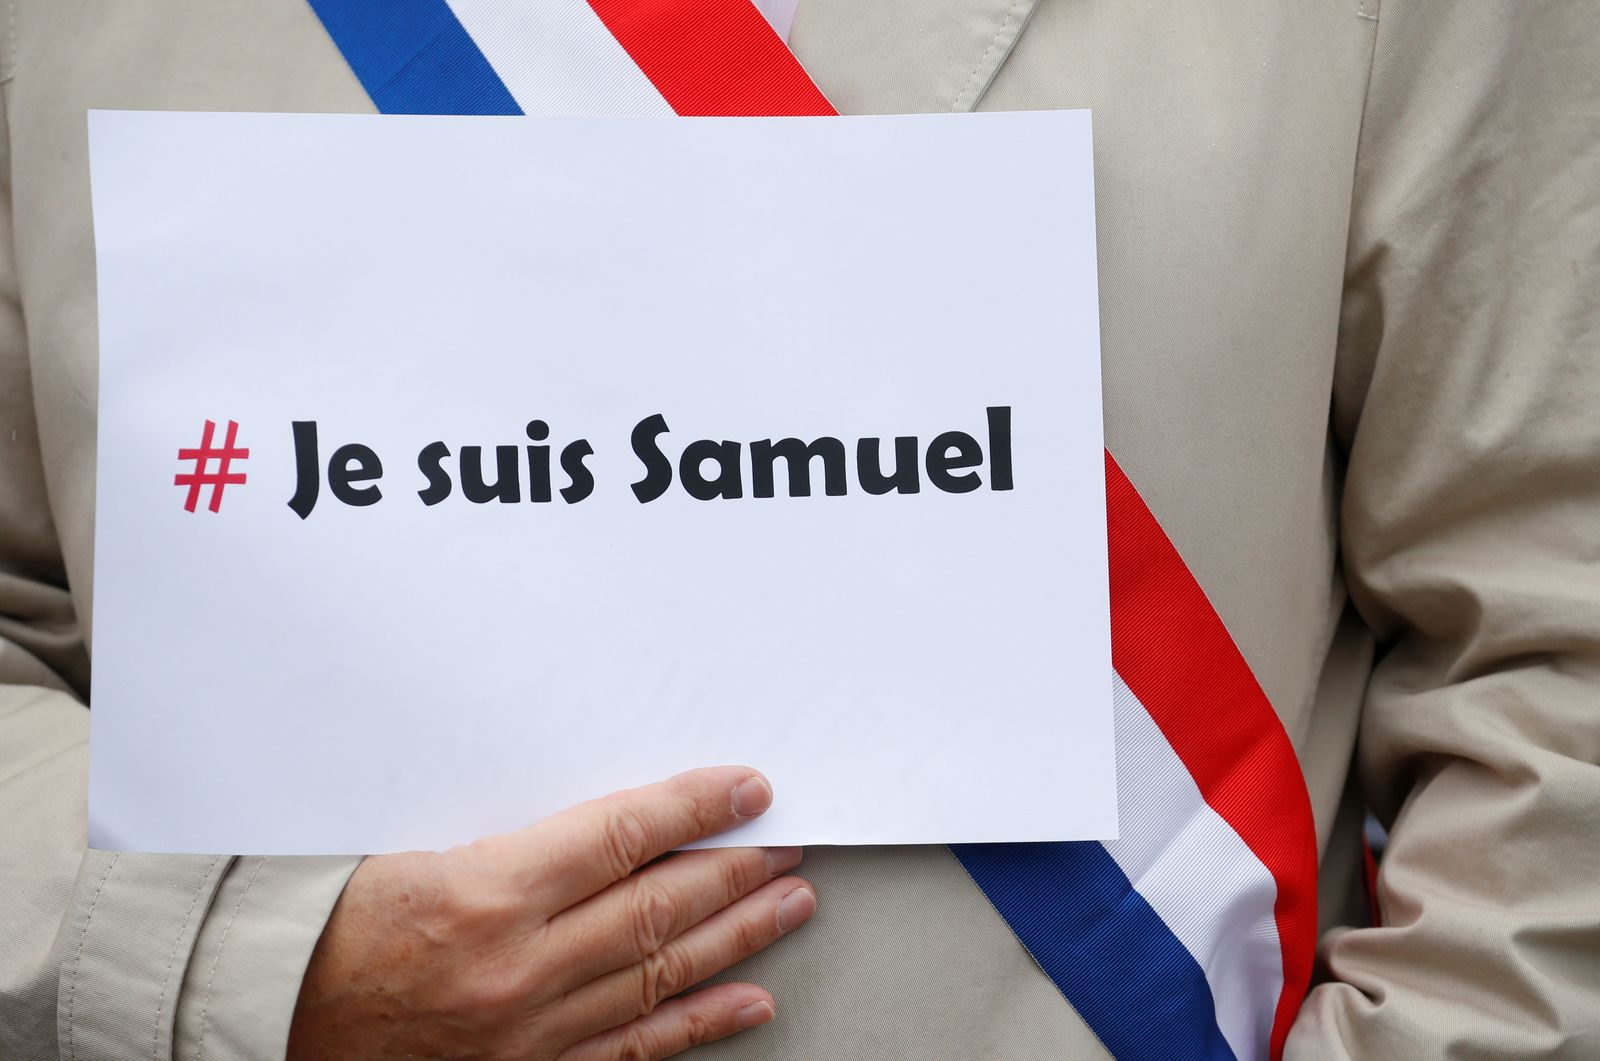 Tribute to Samuel Paty, the French teacher who was beheaded on the streets of the Paris suburb of Conflans St Honorine, in Lille